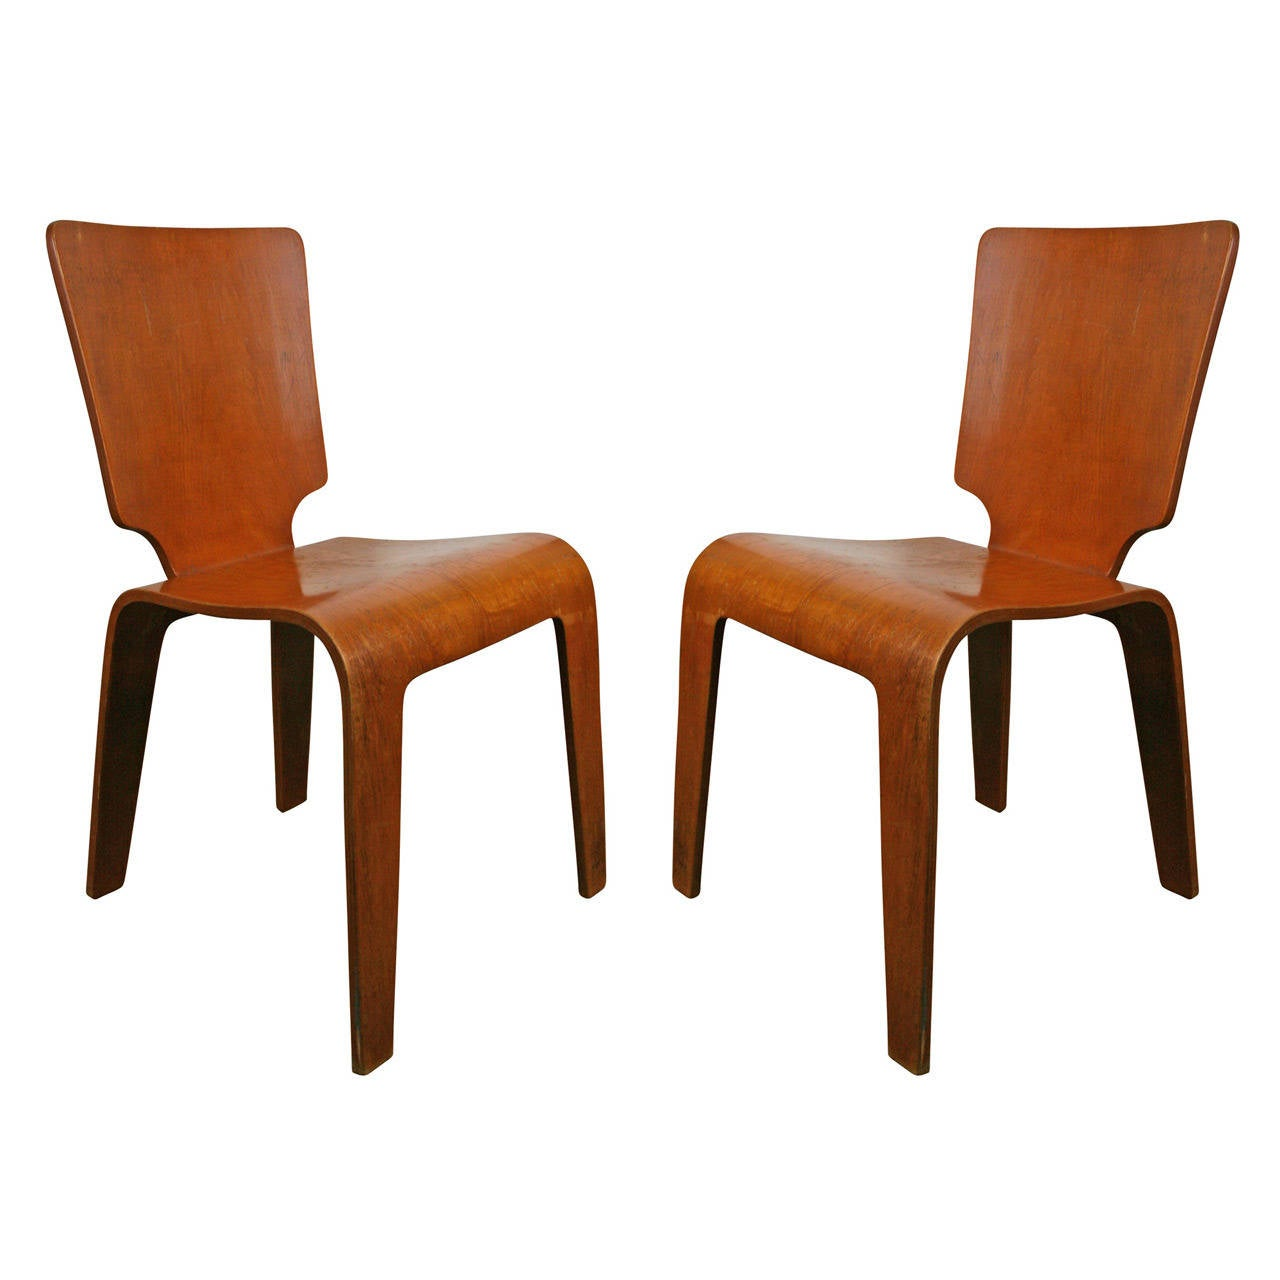 Pair of Thaden Jordan Molded Plywood Side Chairs circa 1947 at